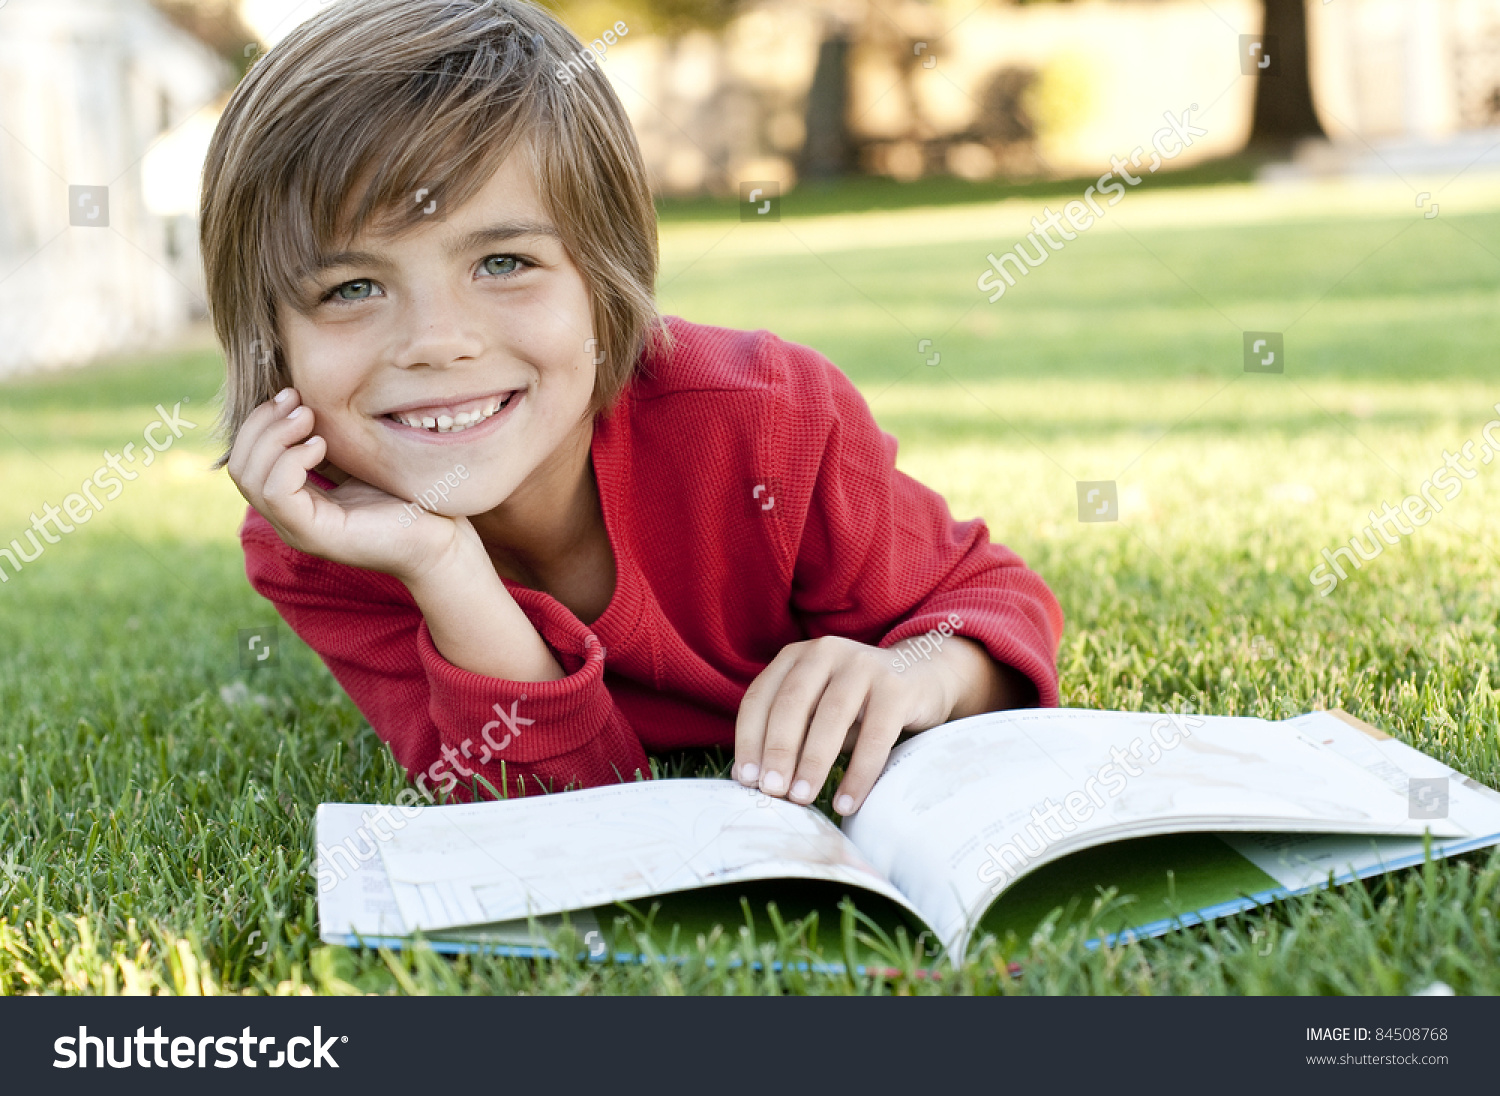 Very Cute 7 Year Old Boy Stock Photo